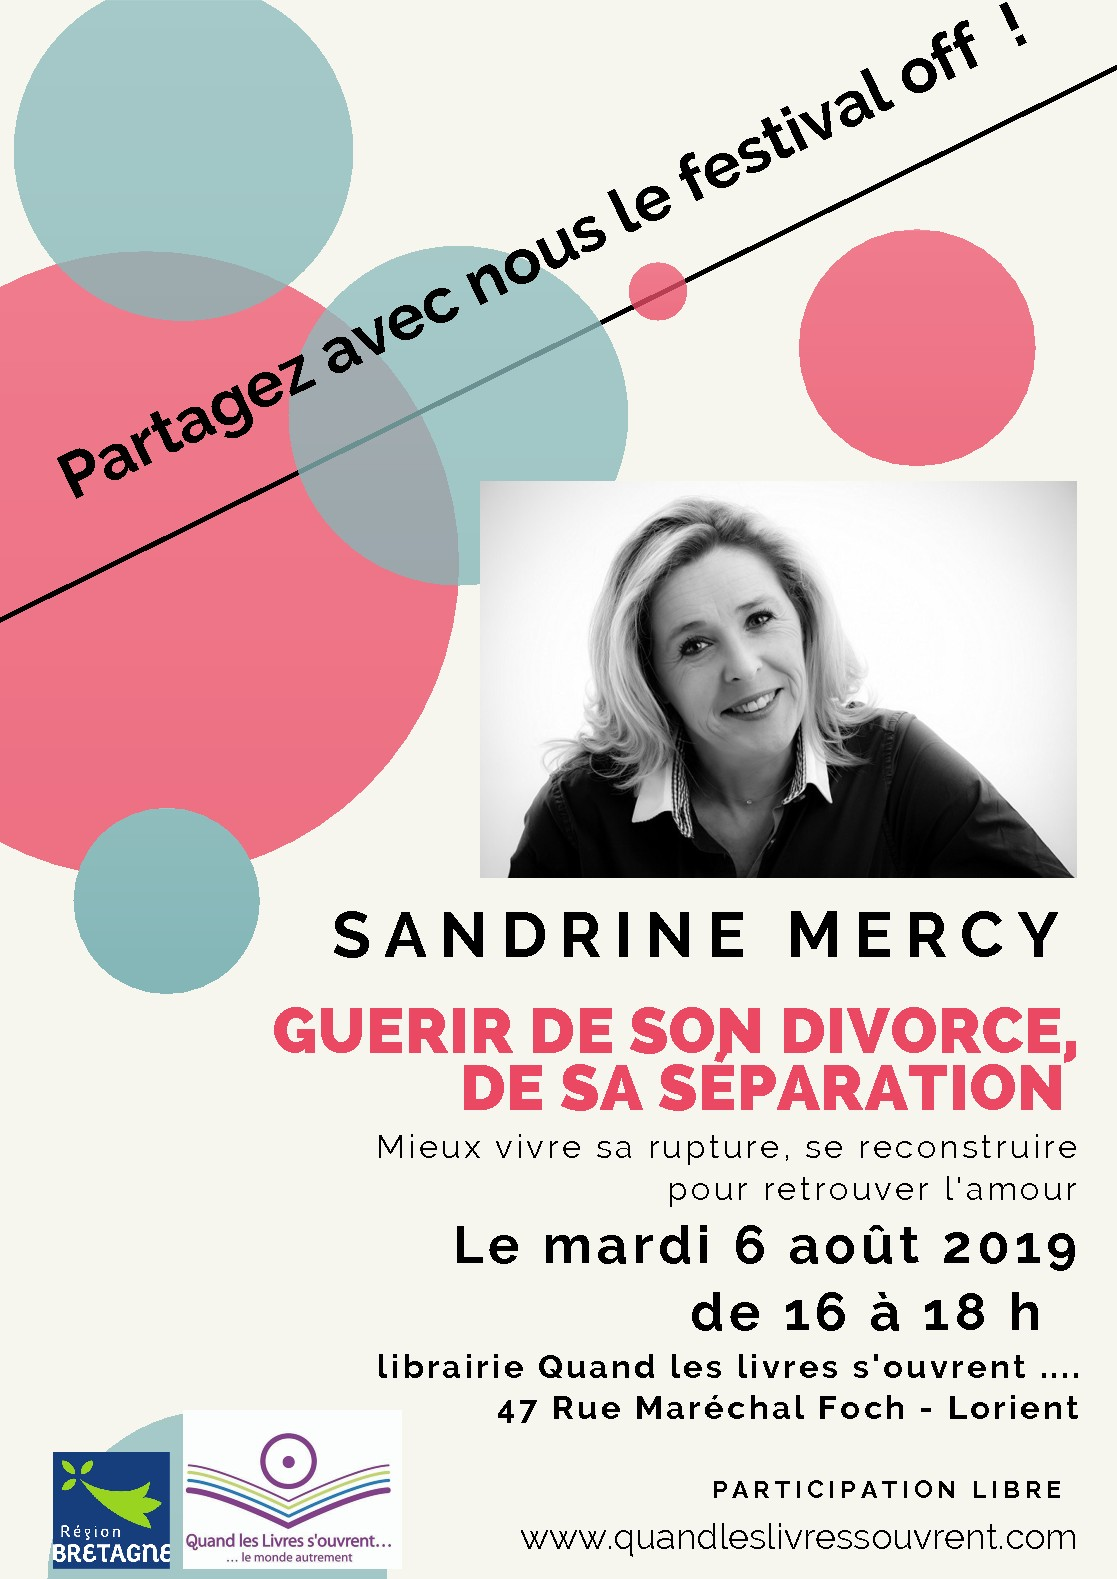 RENCONTRE...GUERIR DE SON DIVORCE, DE SA SEPARATION